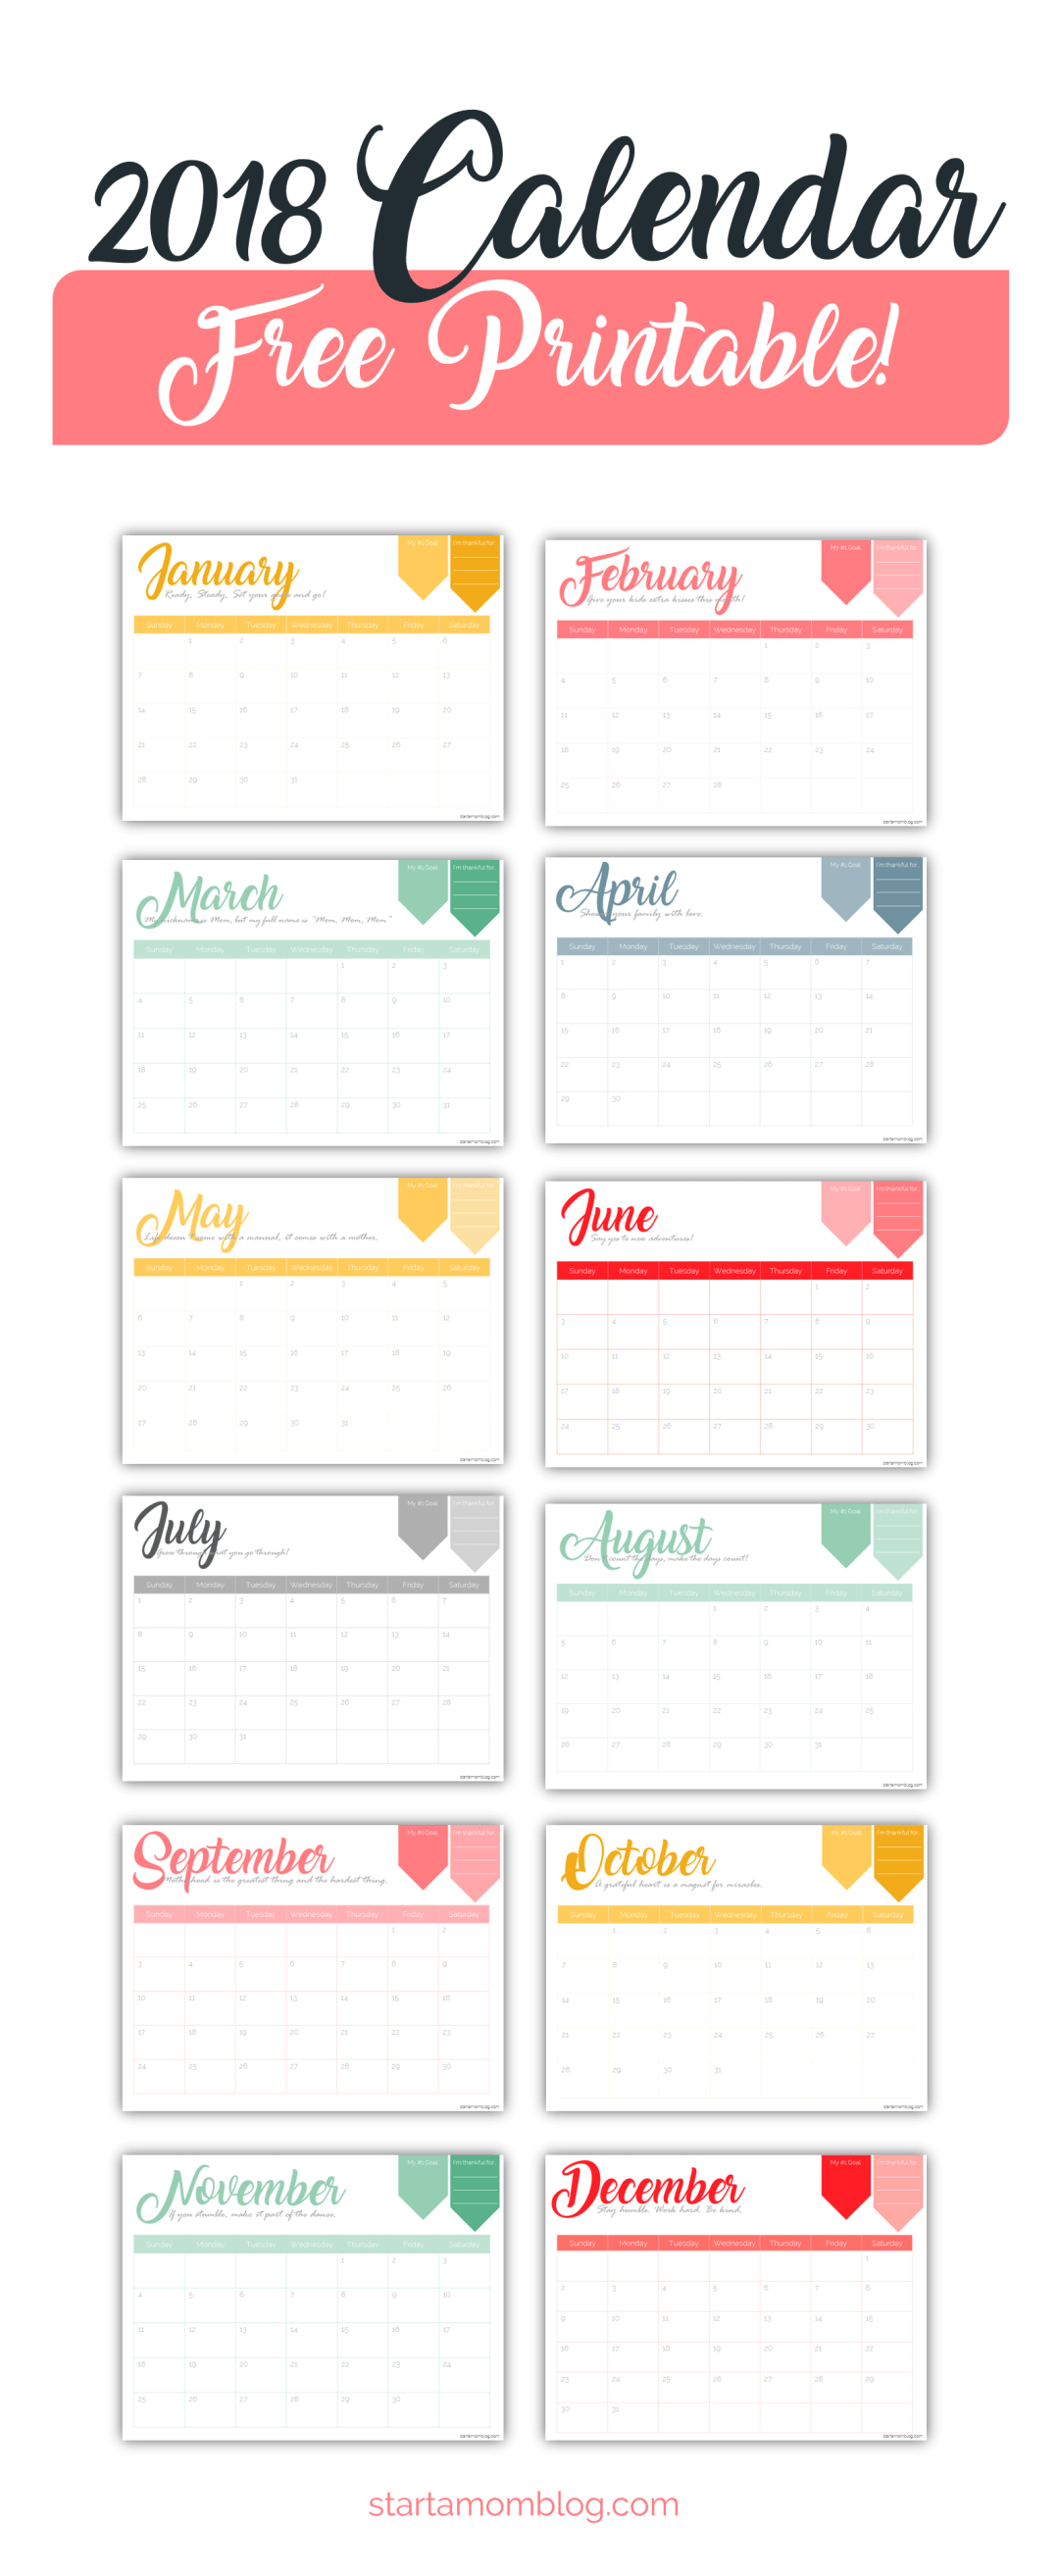 2018 Free Calendar Printable With Inspirational Quotes For Moms - Free Printable Quotes Templates